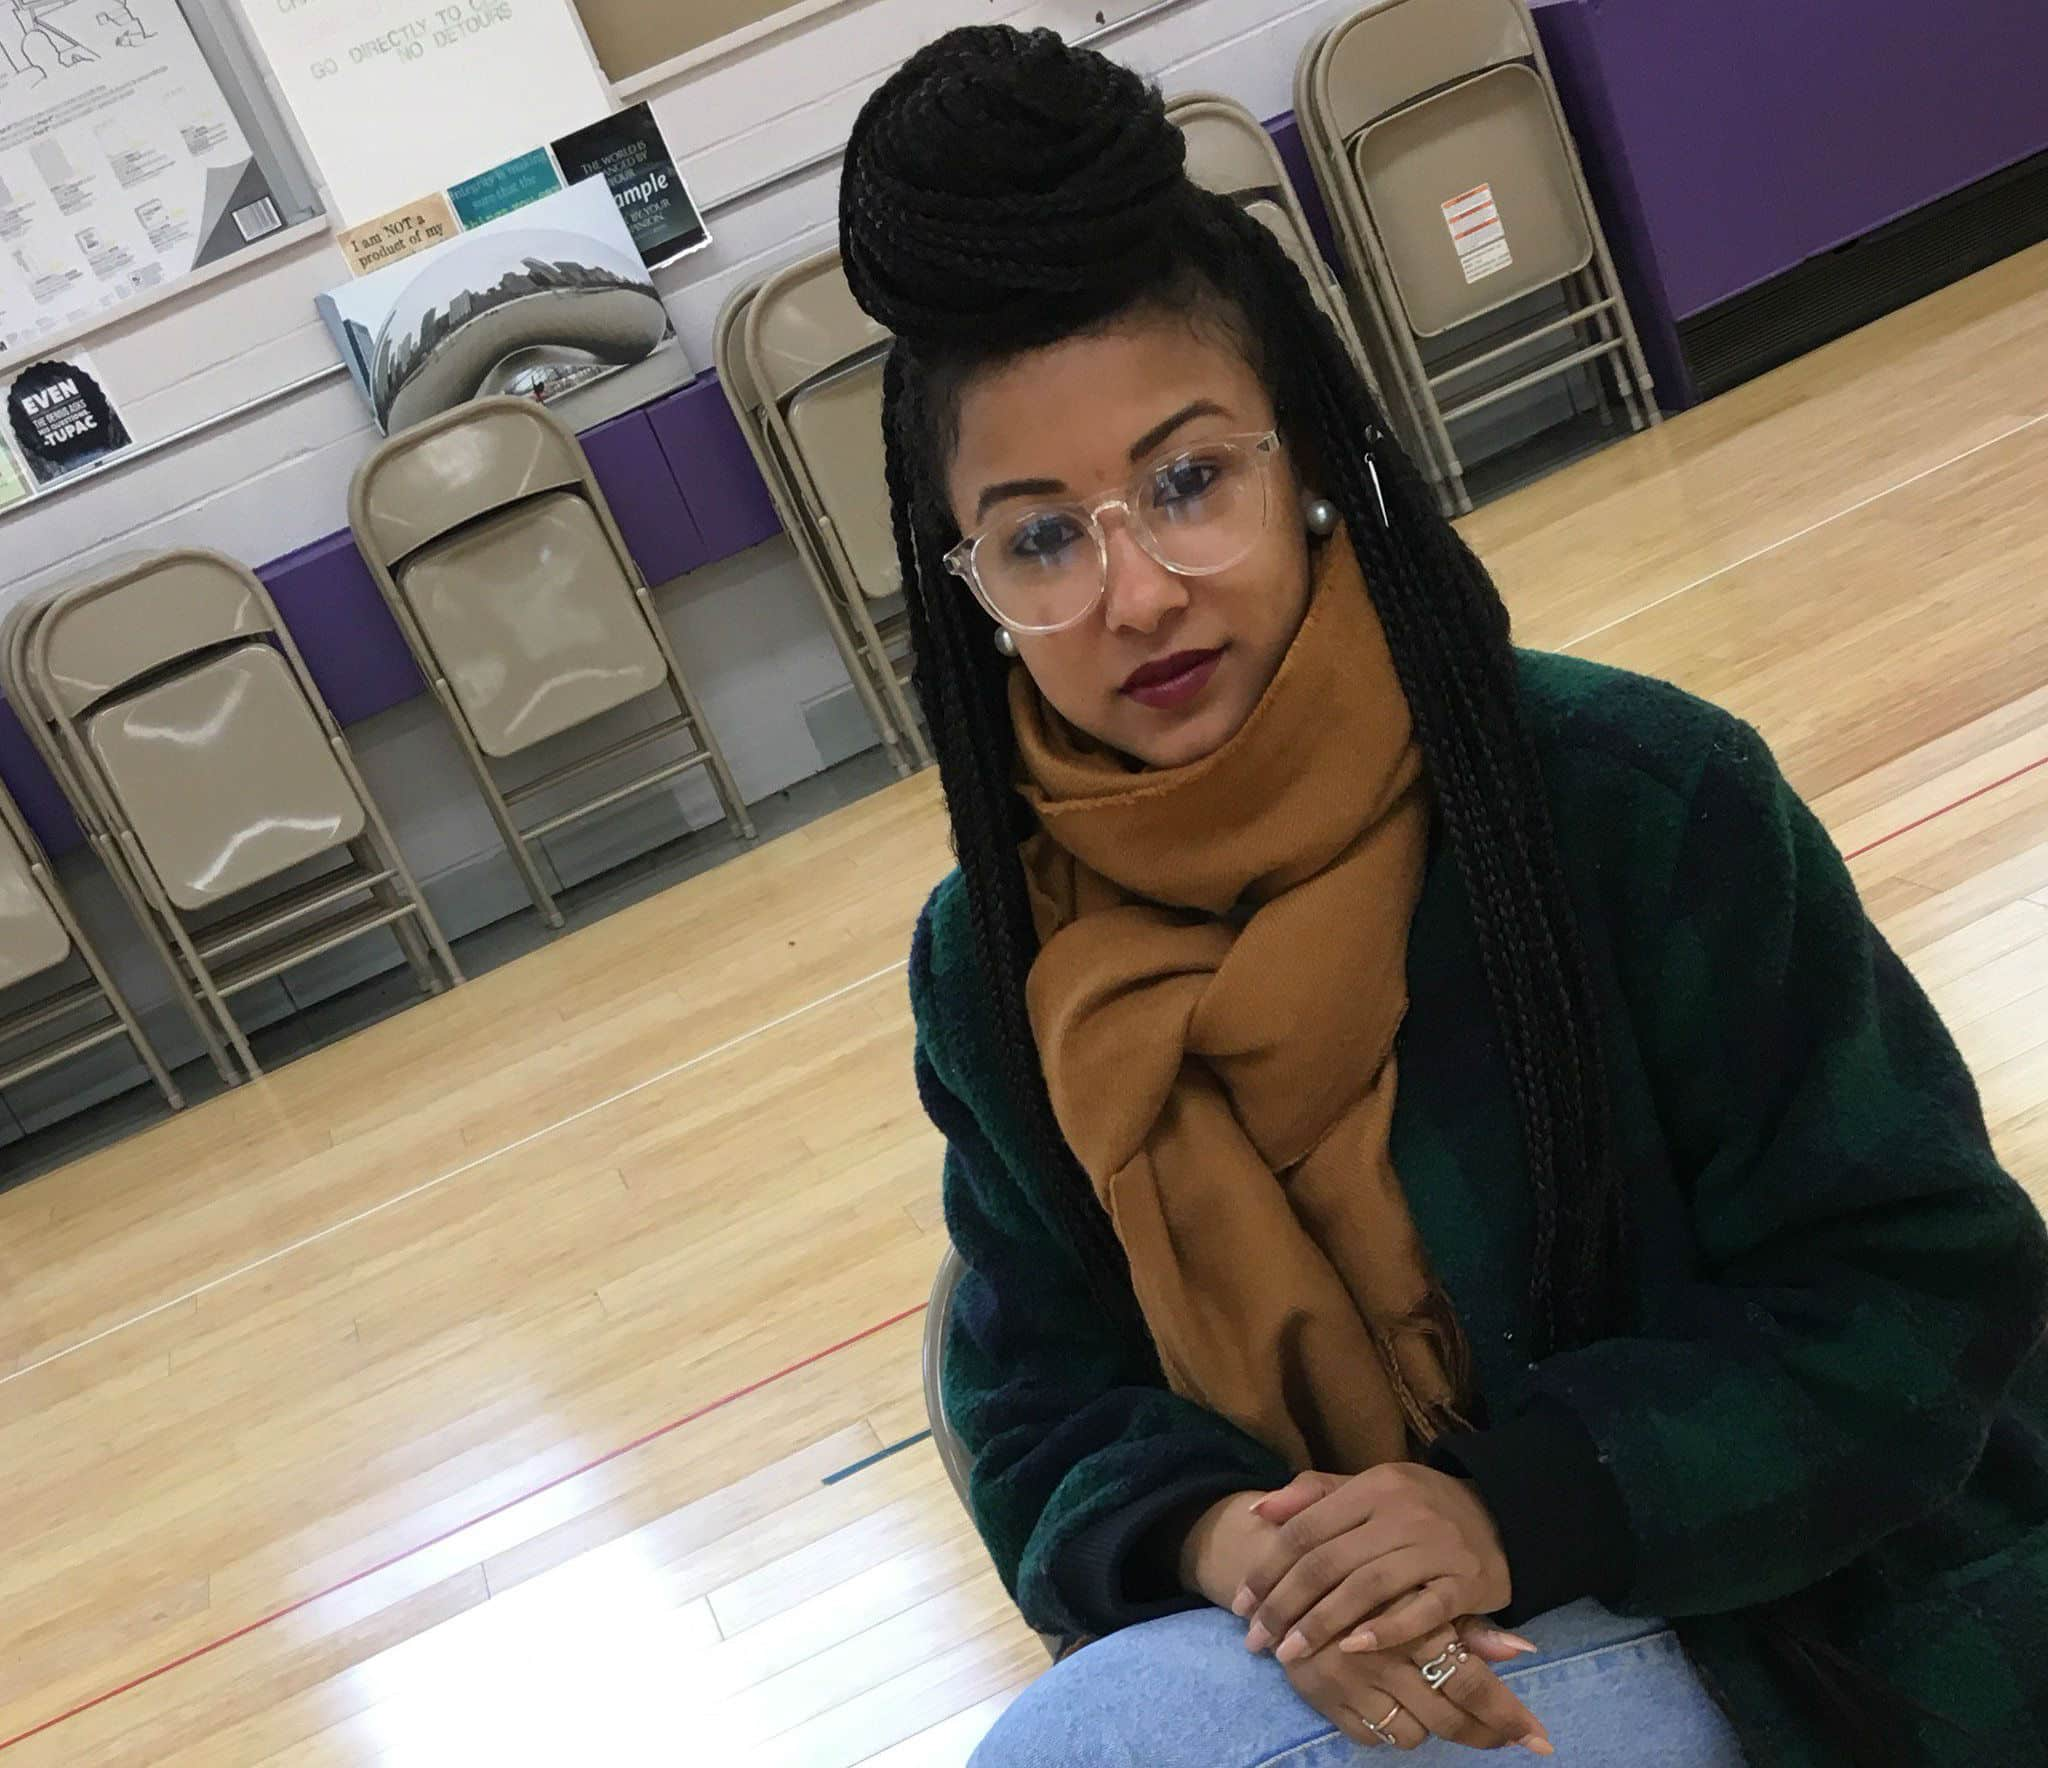 MLK's Legacy Is Being Manifested in This Woke, No-Nonsense Baltimore Teacher